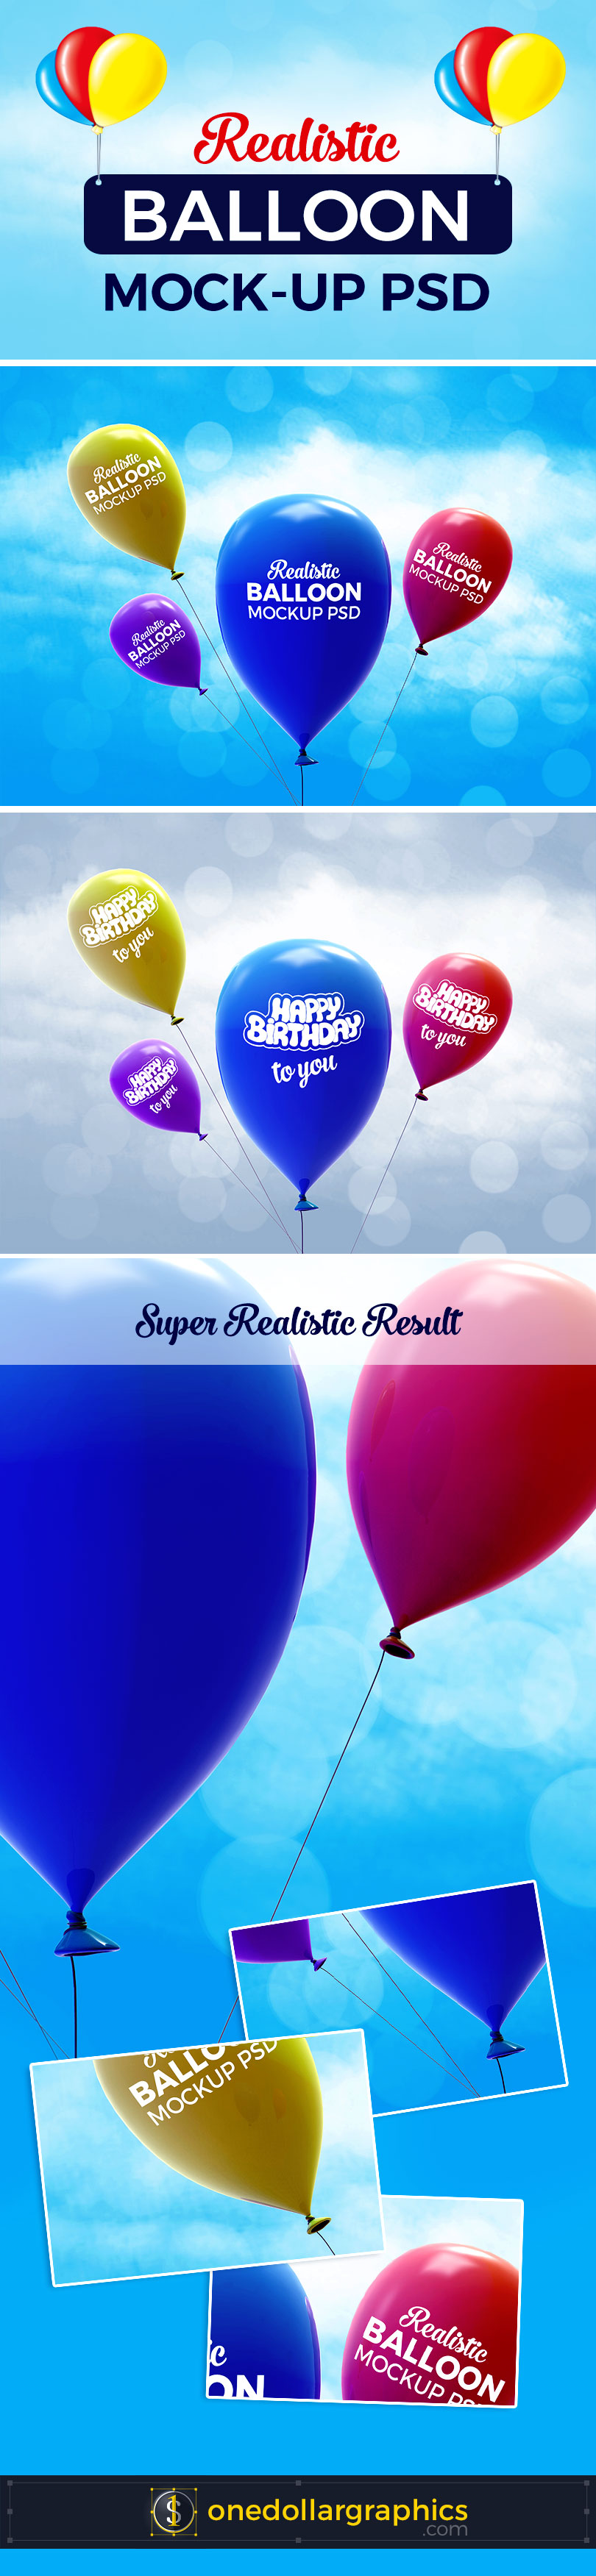 Realistic-Balloon-Mock-up-PSD-(5)